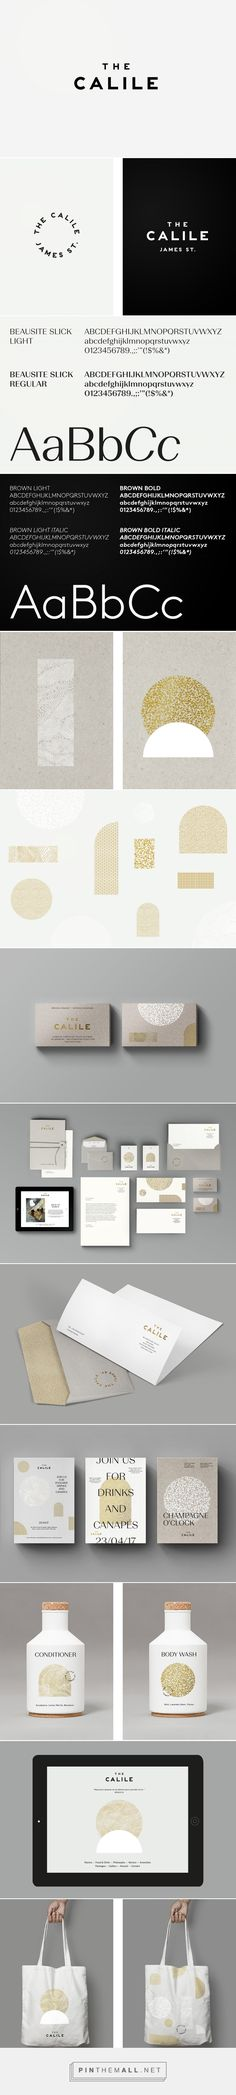 The Calile on Behance - created via https://pinthemall.net